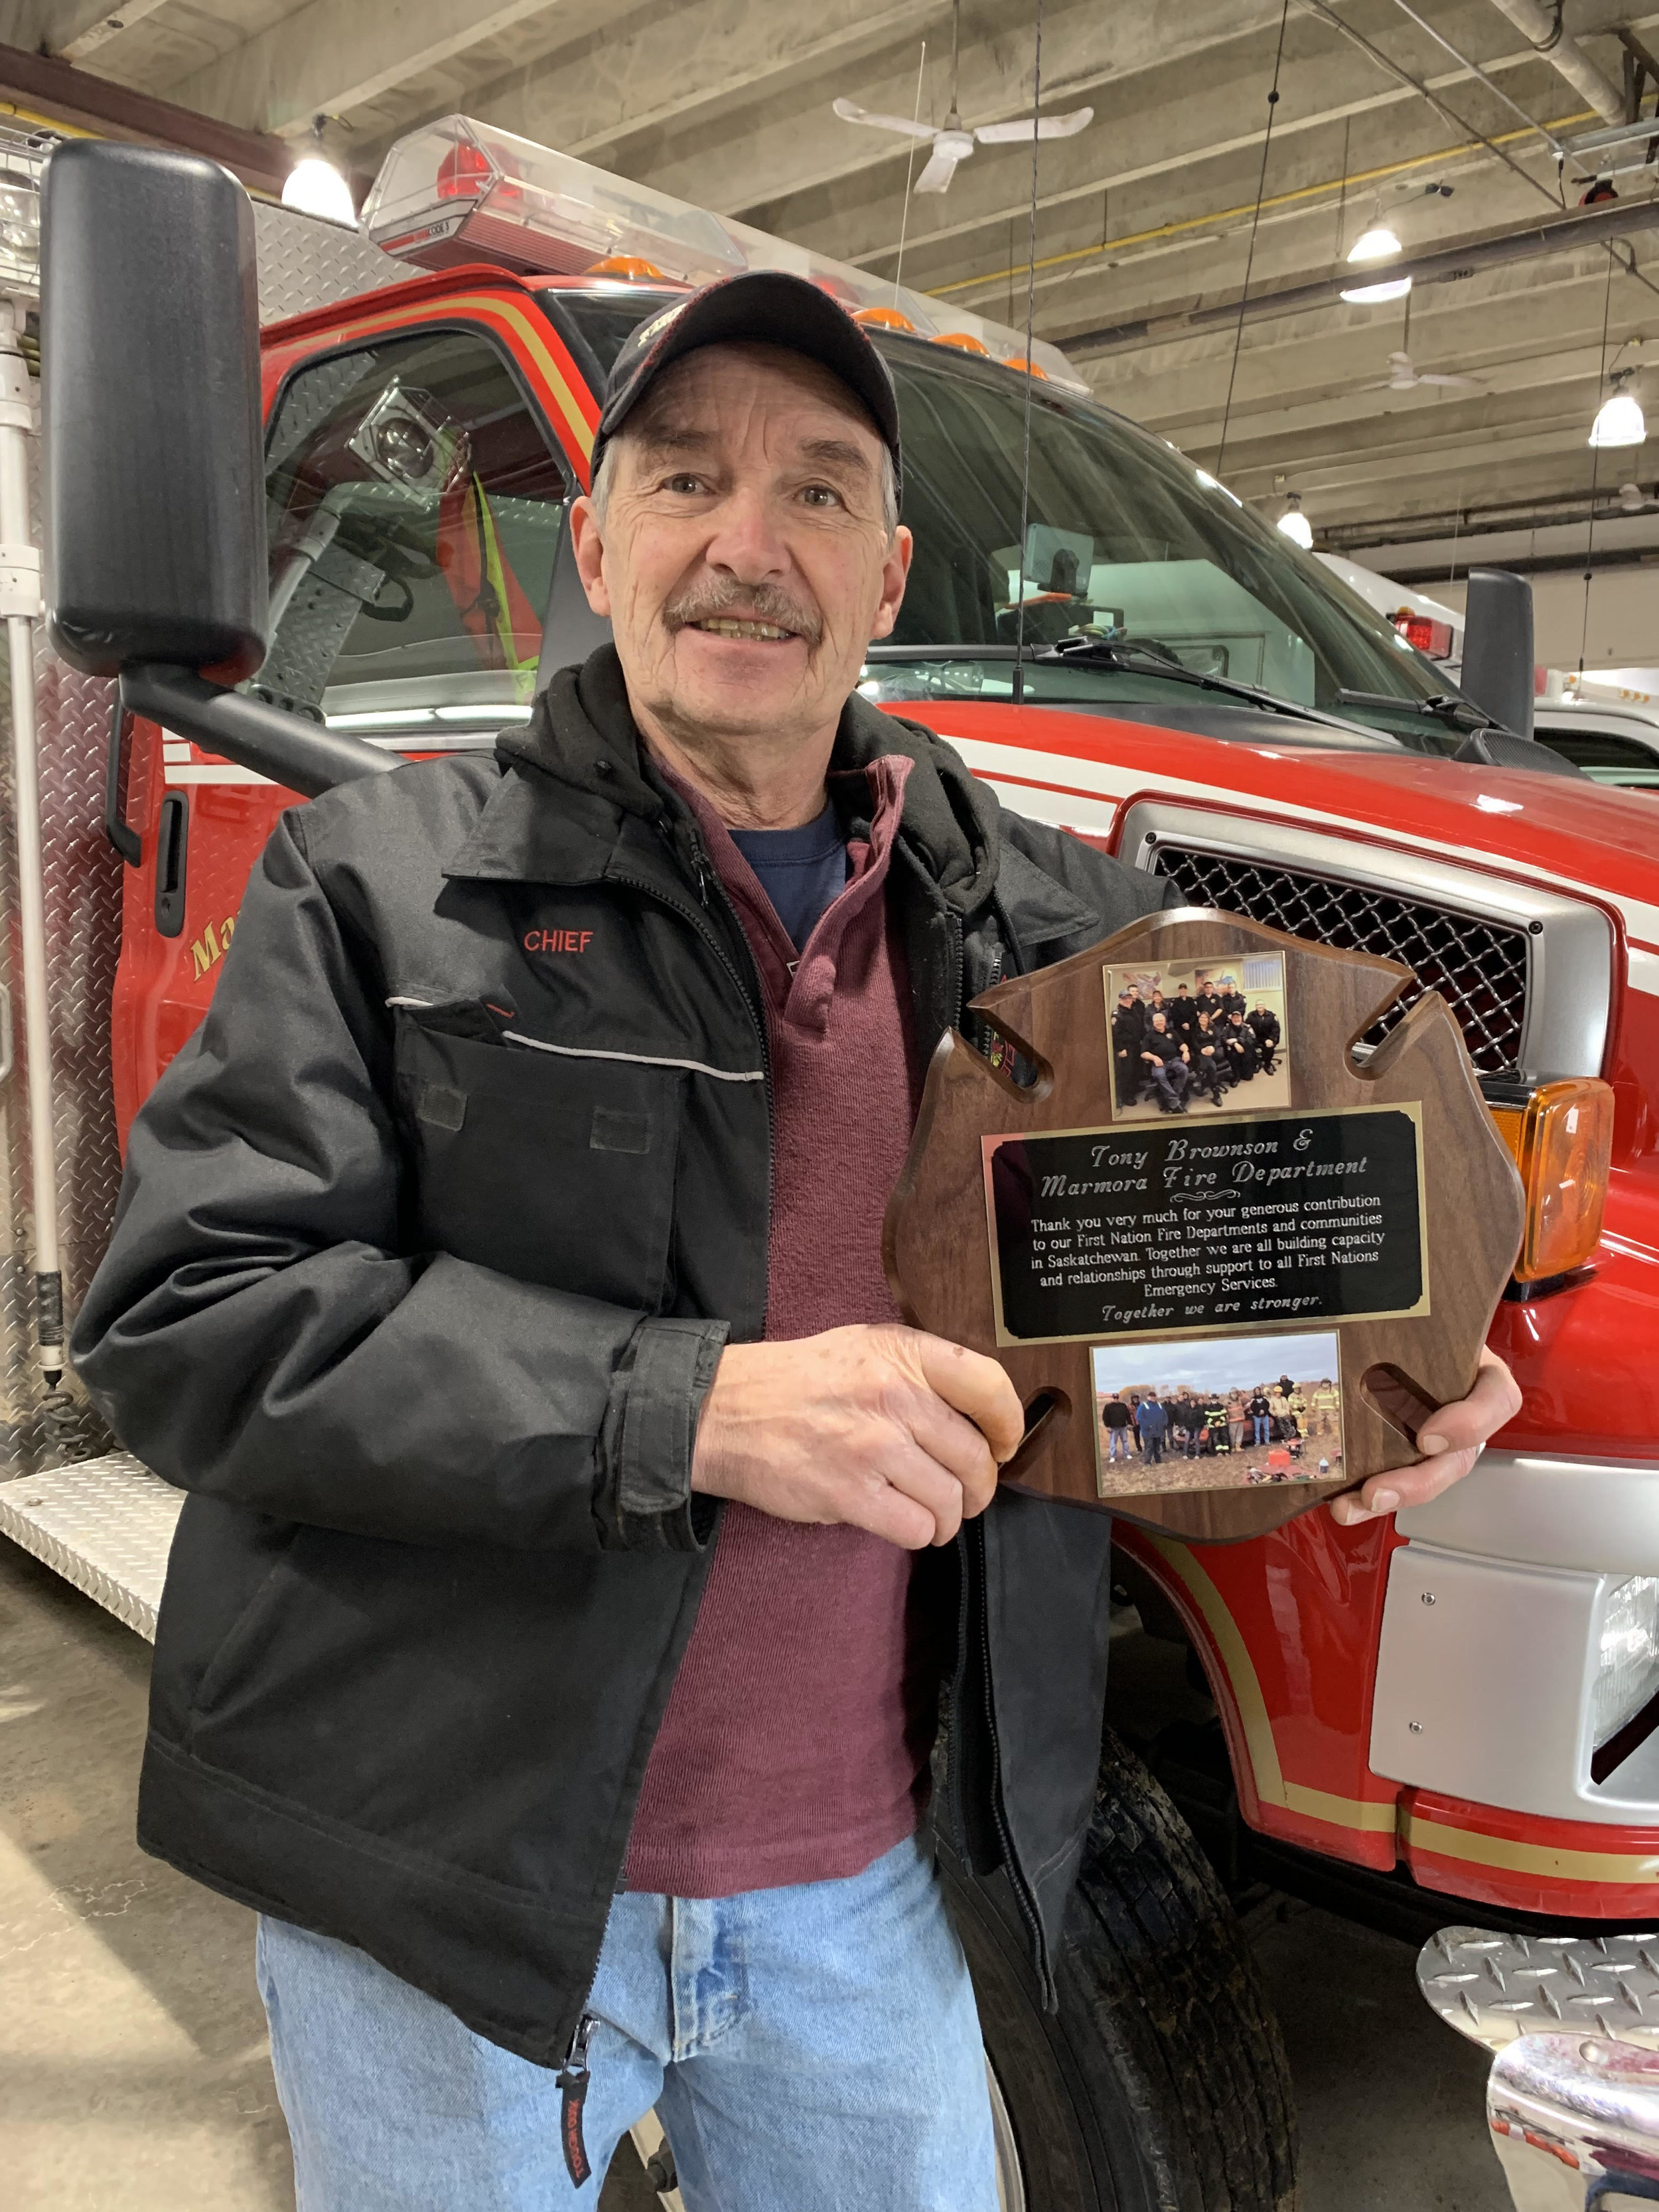 Fire Chief Tony Brownson shows the plaque sent to him by First Nations Emergency Services for his efforts to provide First Nation Fire Departments with good used equipment.